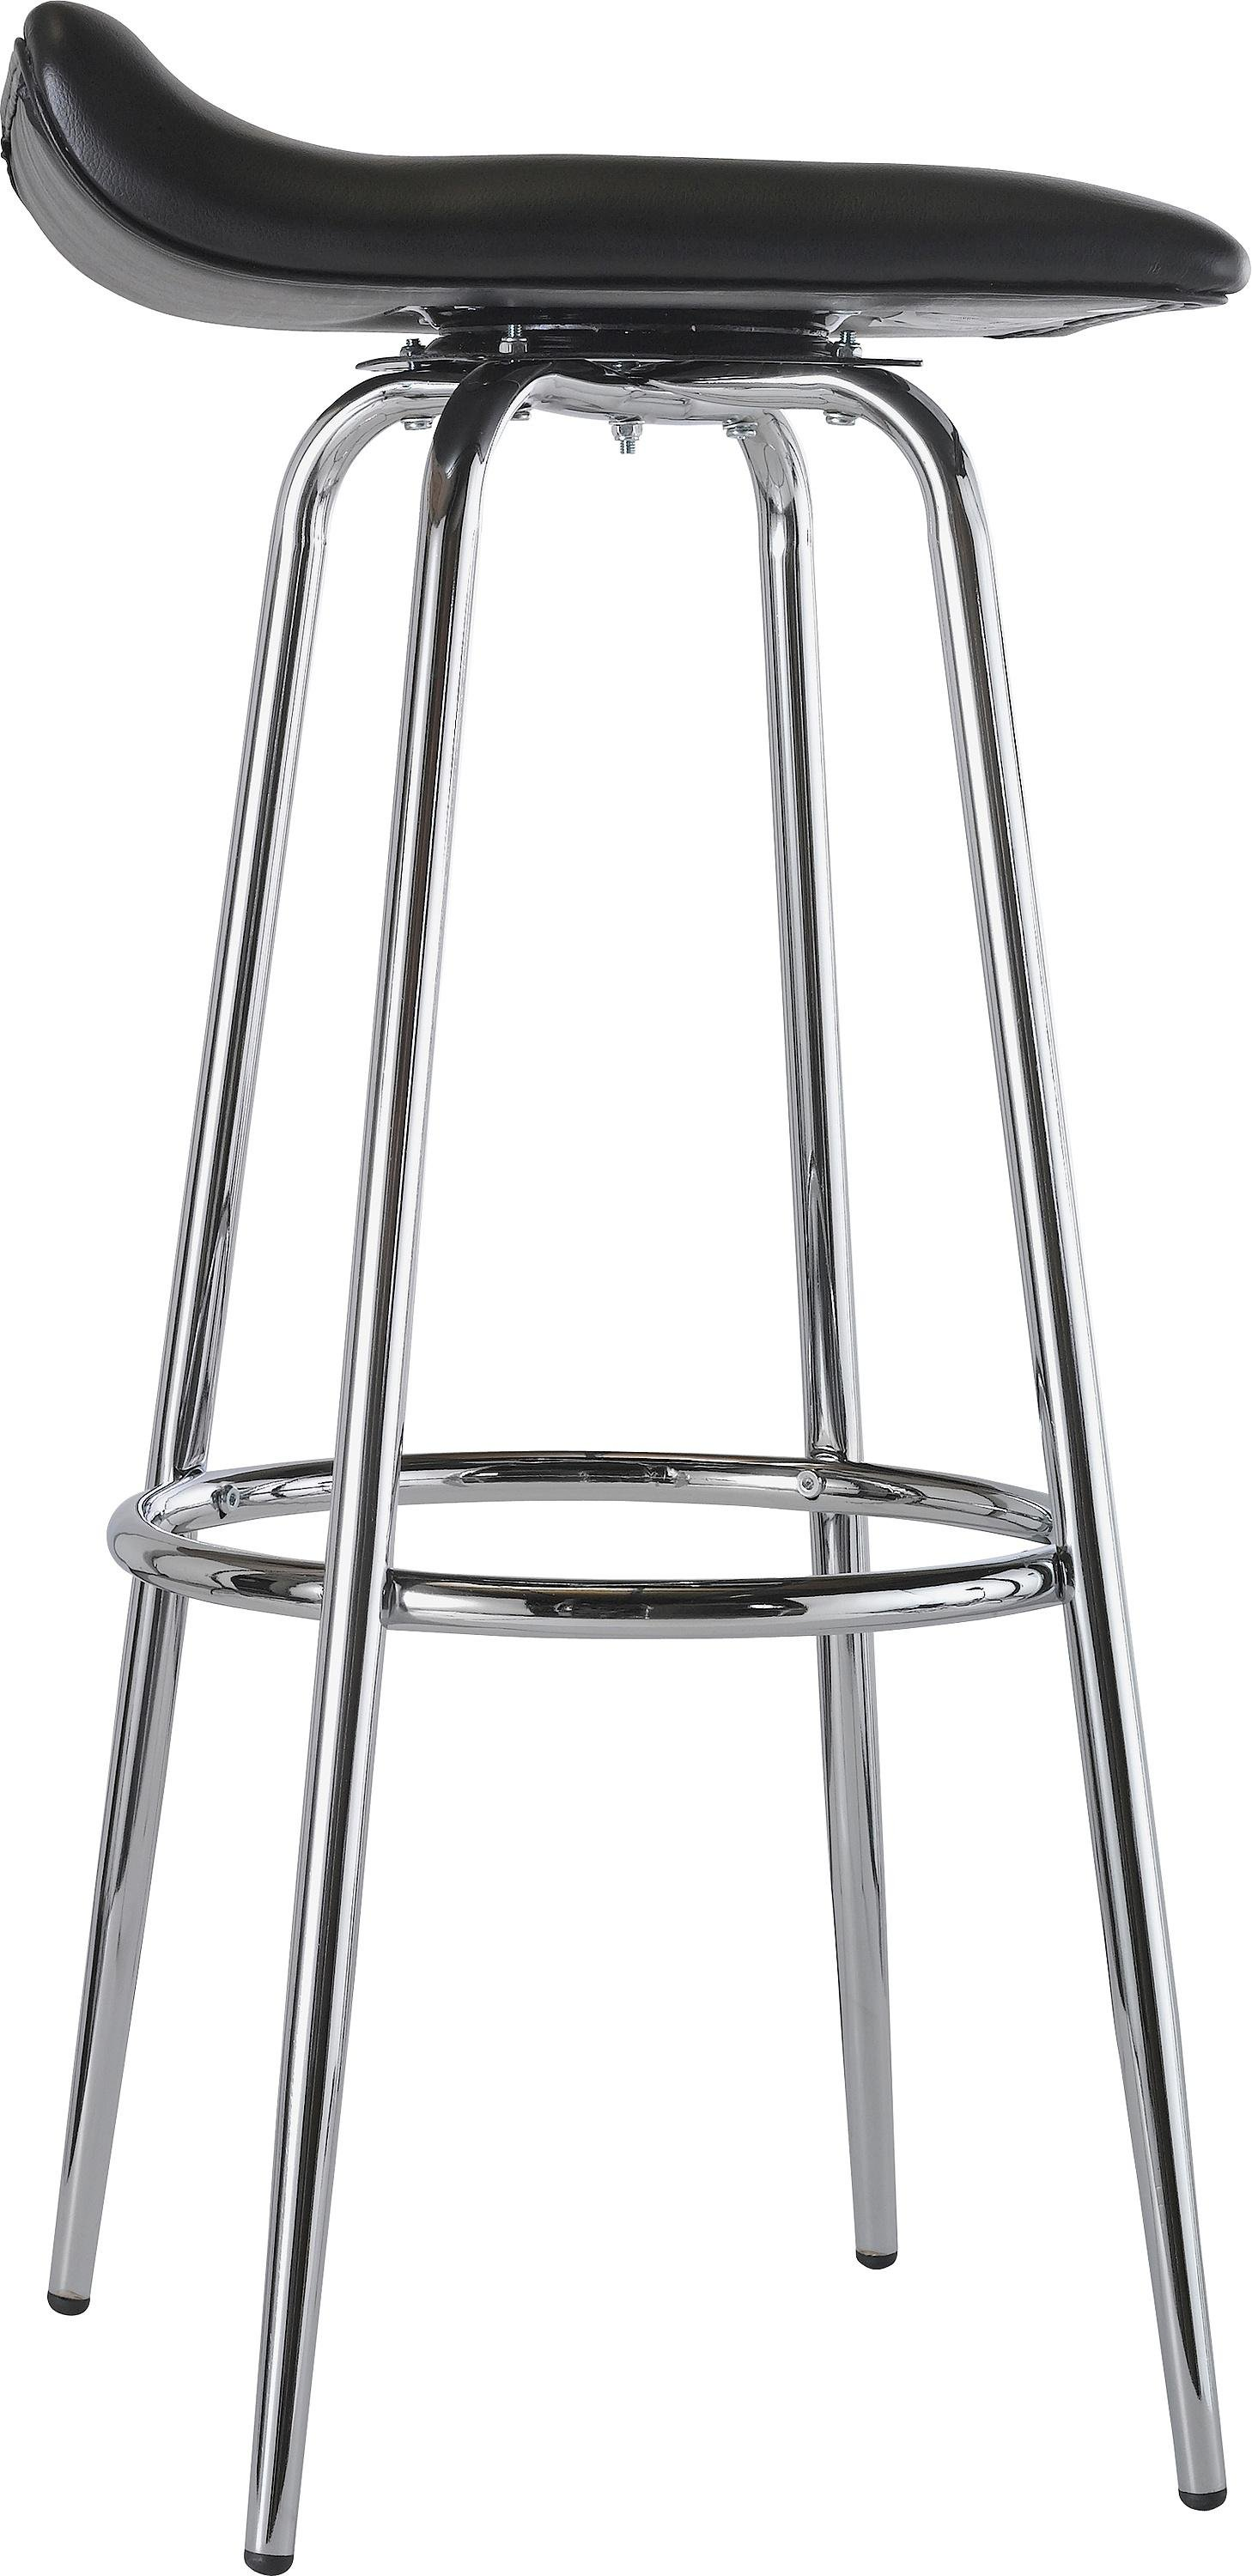 Buy HOME Pair of Black and Chrome Swivel Head Bar Stools  : 6001742RZ003AUC1259284Webampw570amph513 from www.argos.co.uk size 570 x 513 jpeg 17kB